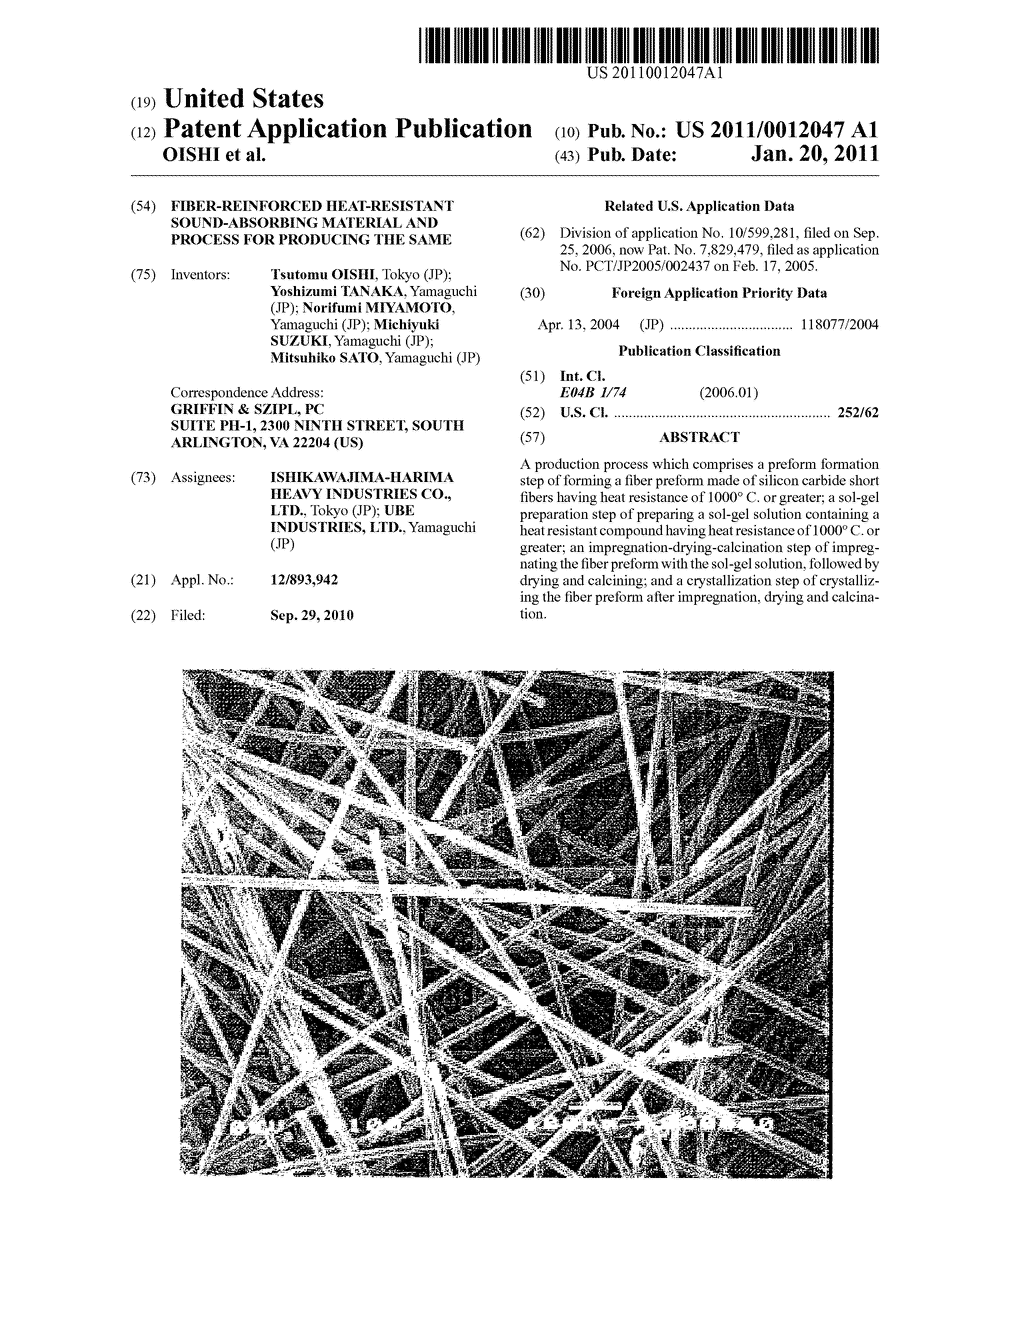 FIBER-REINFORCED HEAT-RESISTANT SOUND-ABSORBING MATERIAL AND PROCESS FOR PRODUCING THE SAME - diagram, schematic, and image 01